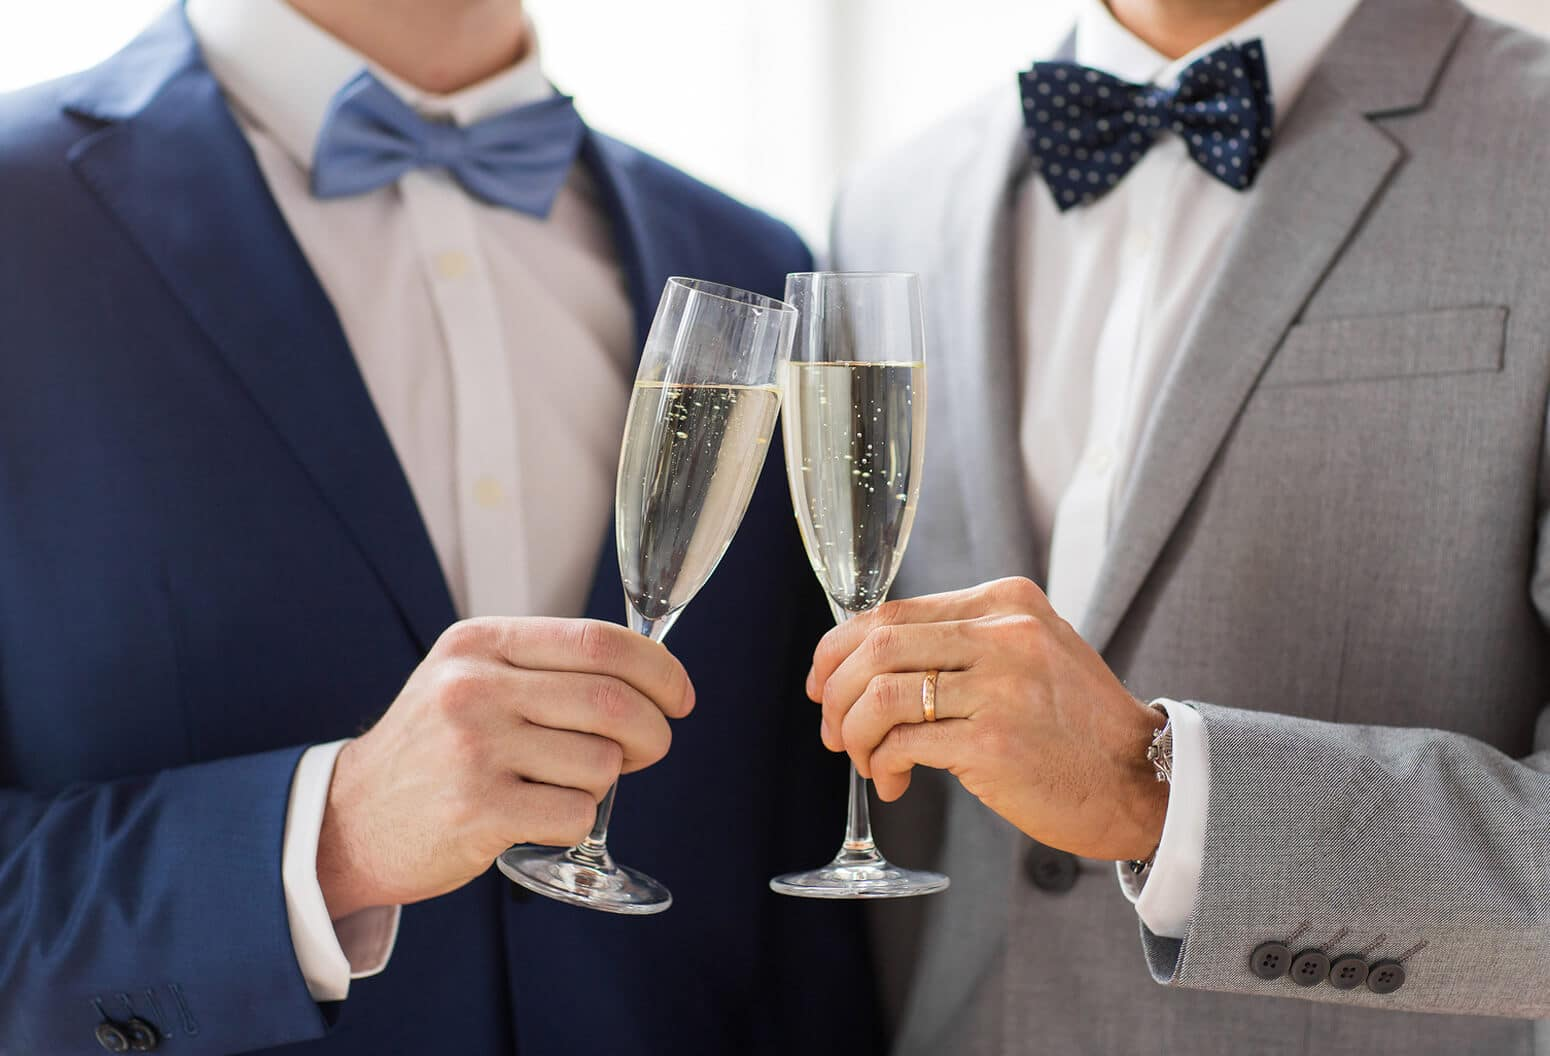 gay couple at wedding with Champagne